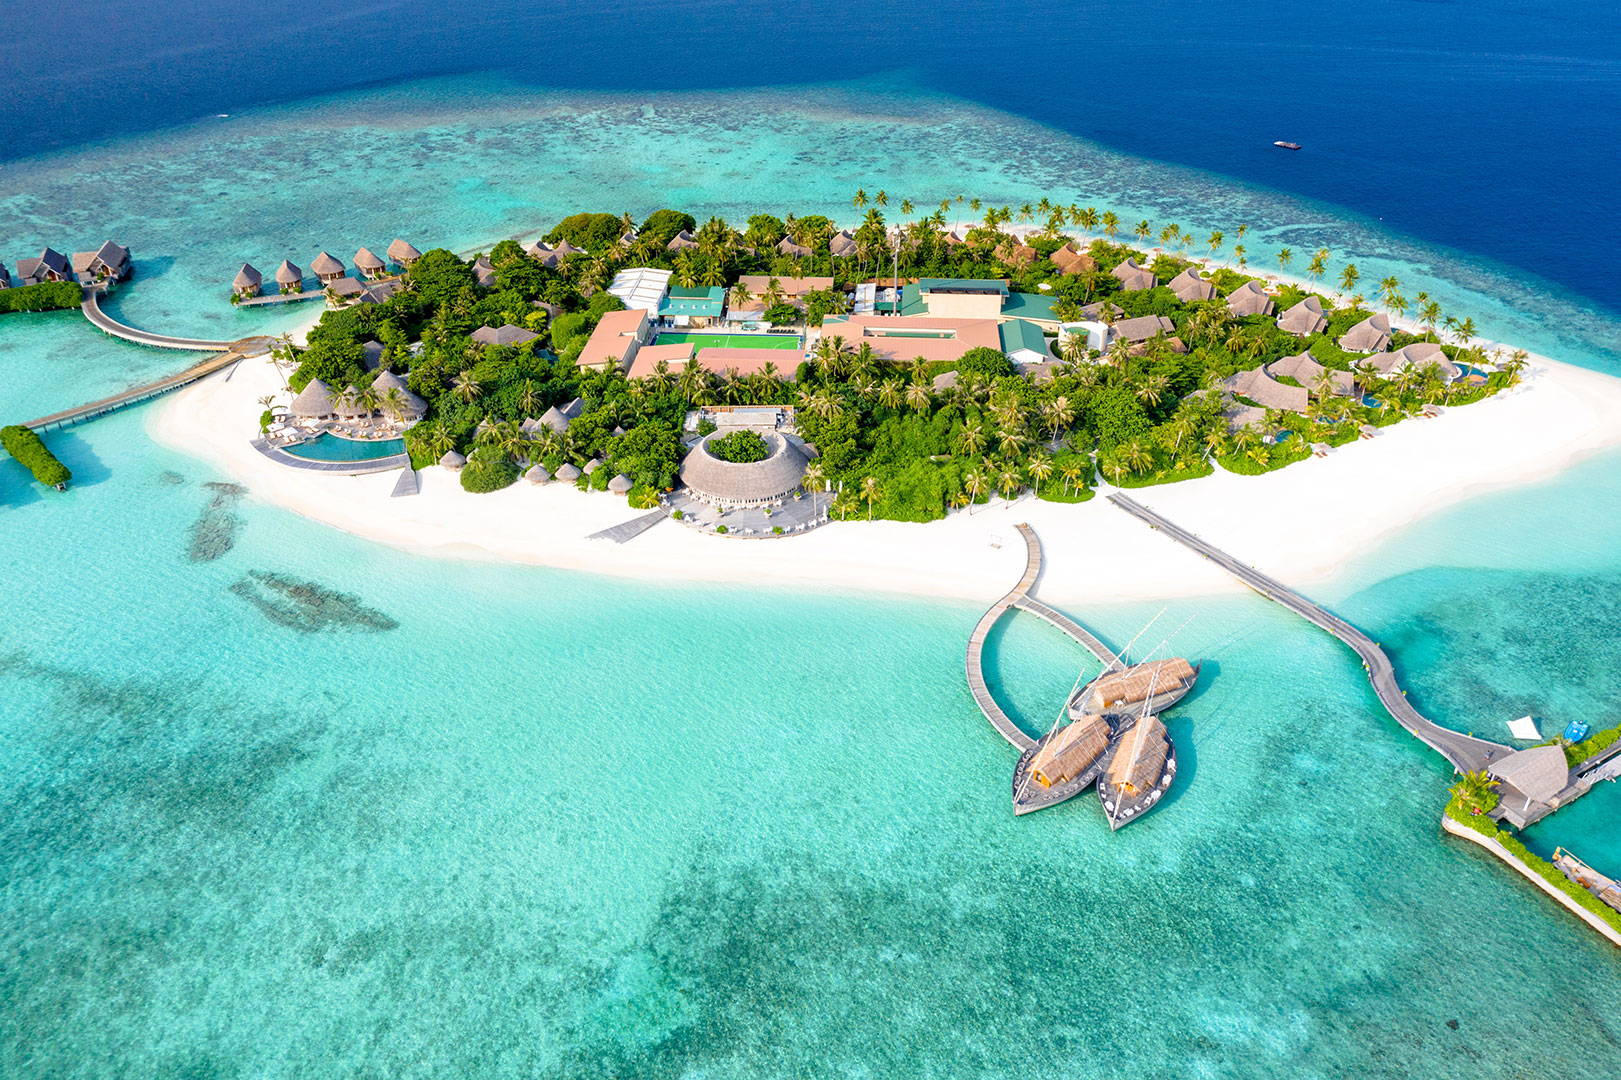 Tropical Island in Maldives Drone shot